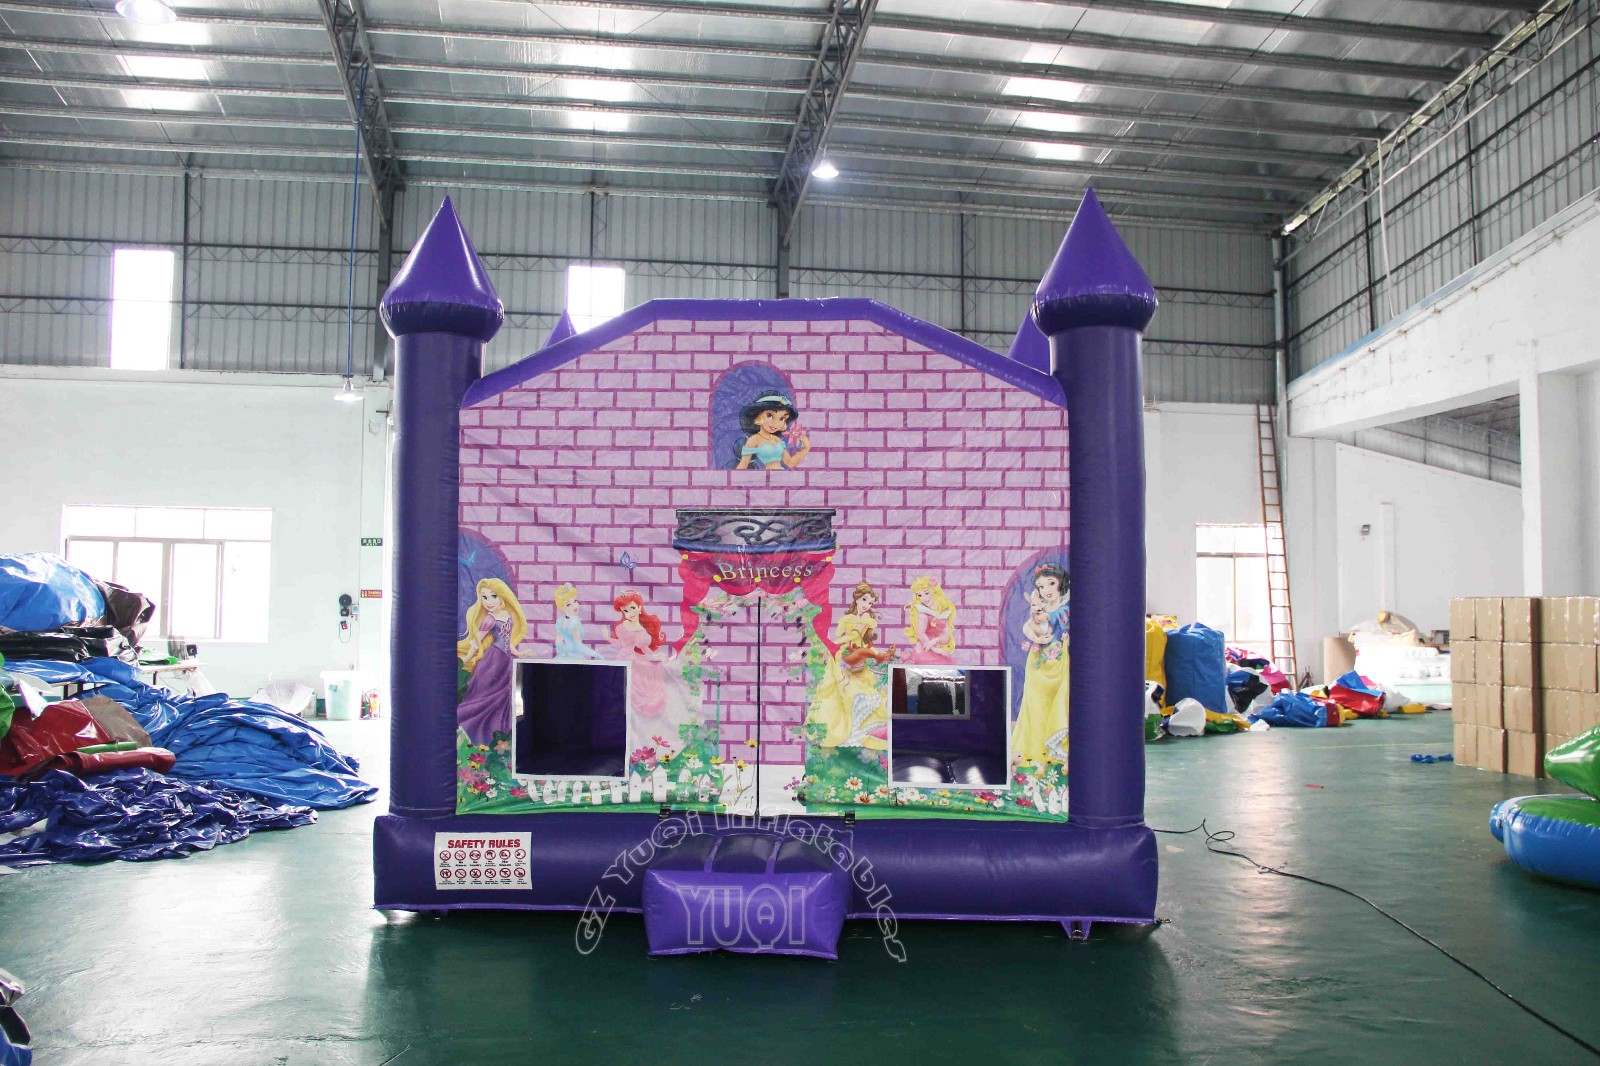 YUQI-High-quality Yq47 Beautiful Princess Inflatable House For Kids